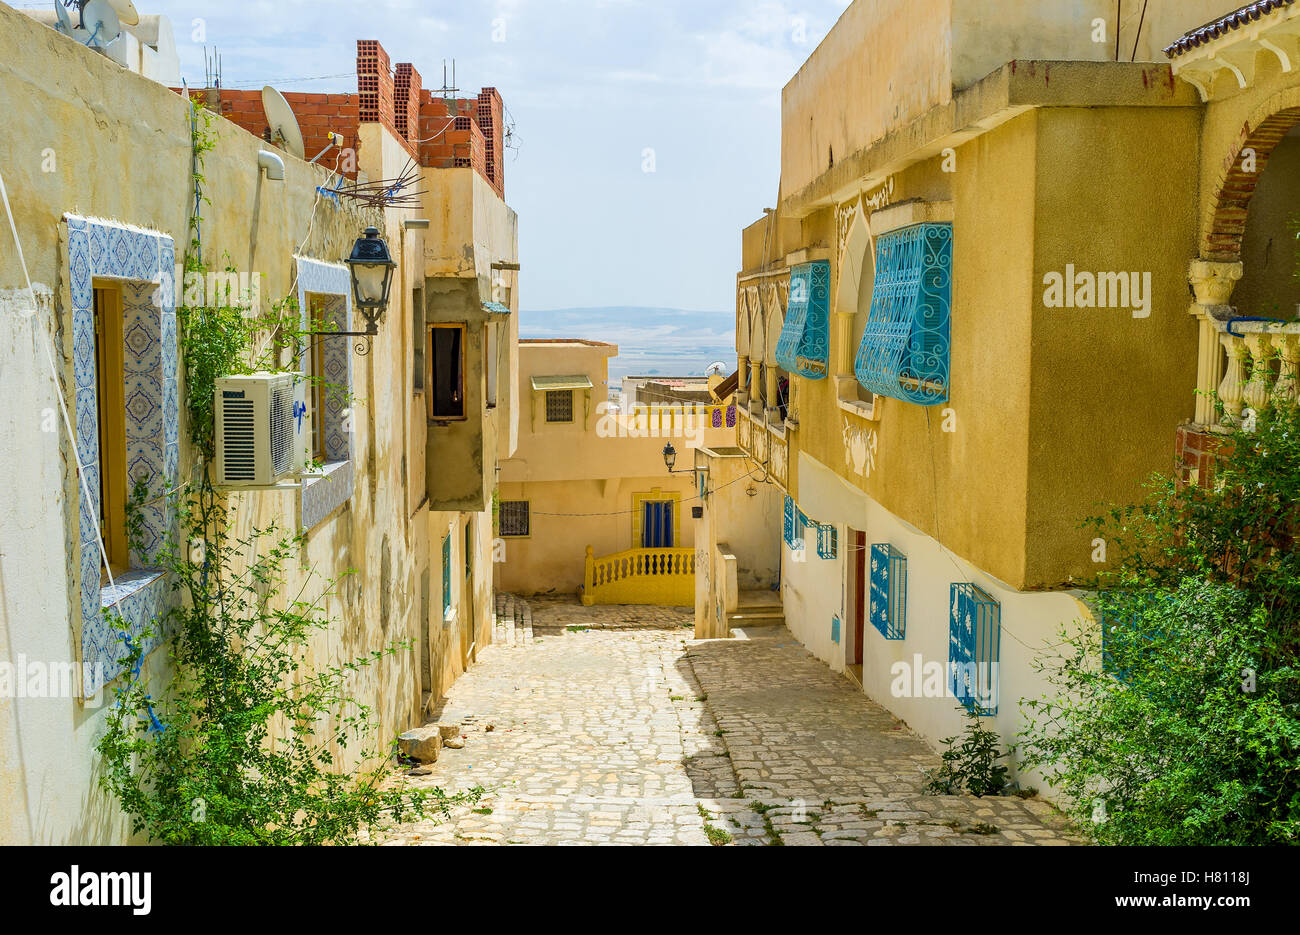 The old town of El Kef situated on the large hill, so its streets mostly are the climbs or the descents, Tunisia. - Stock Image